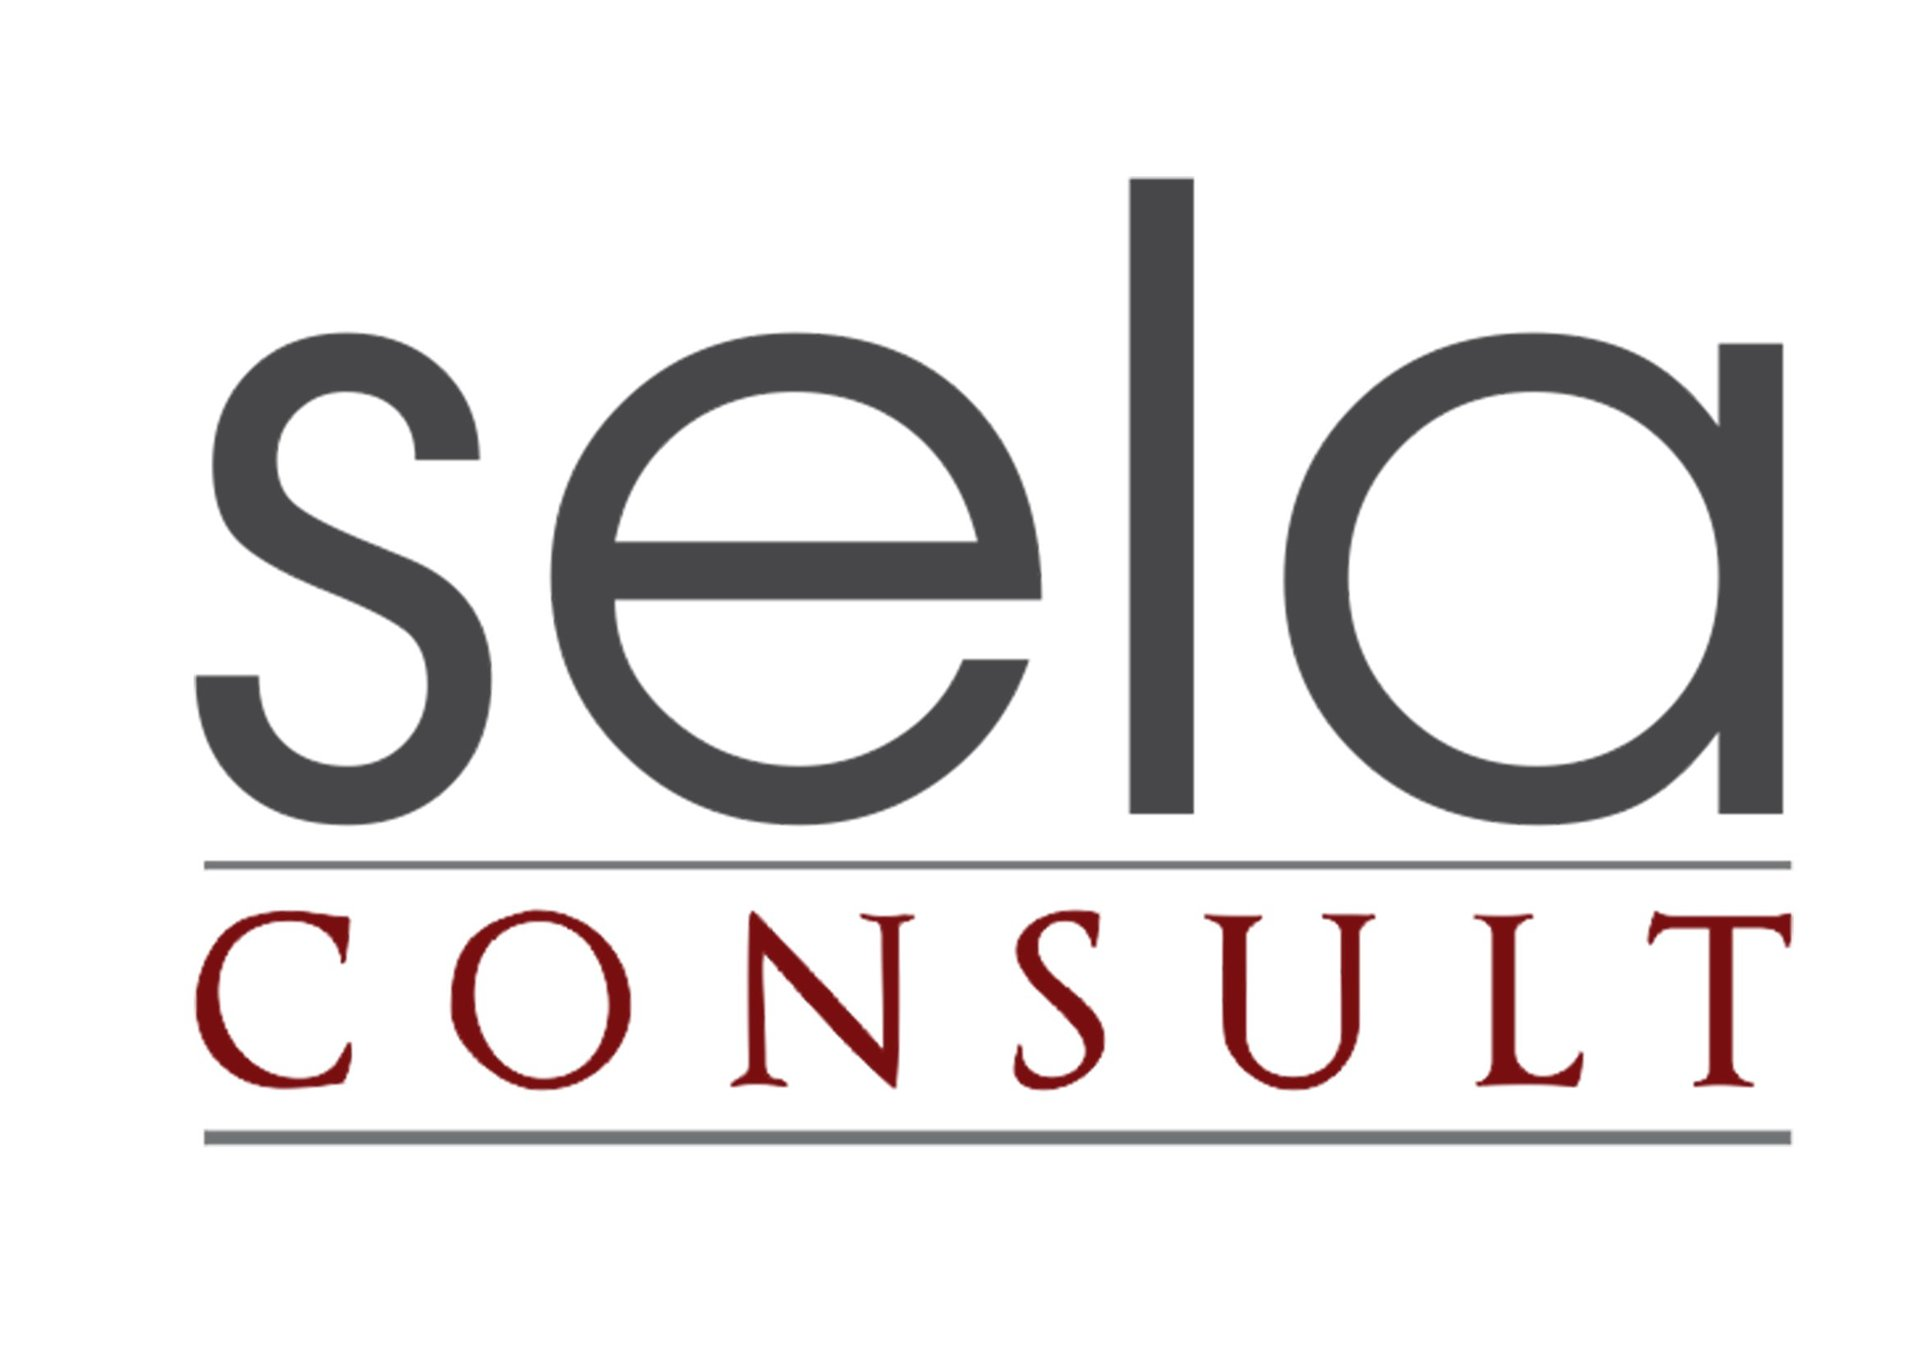 Sela Consult Limited